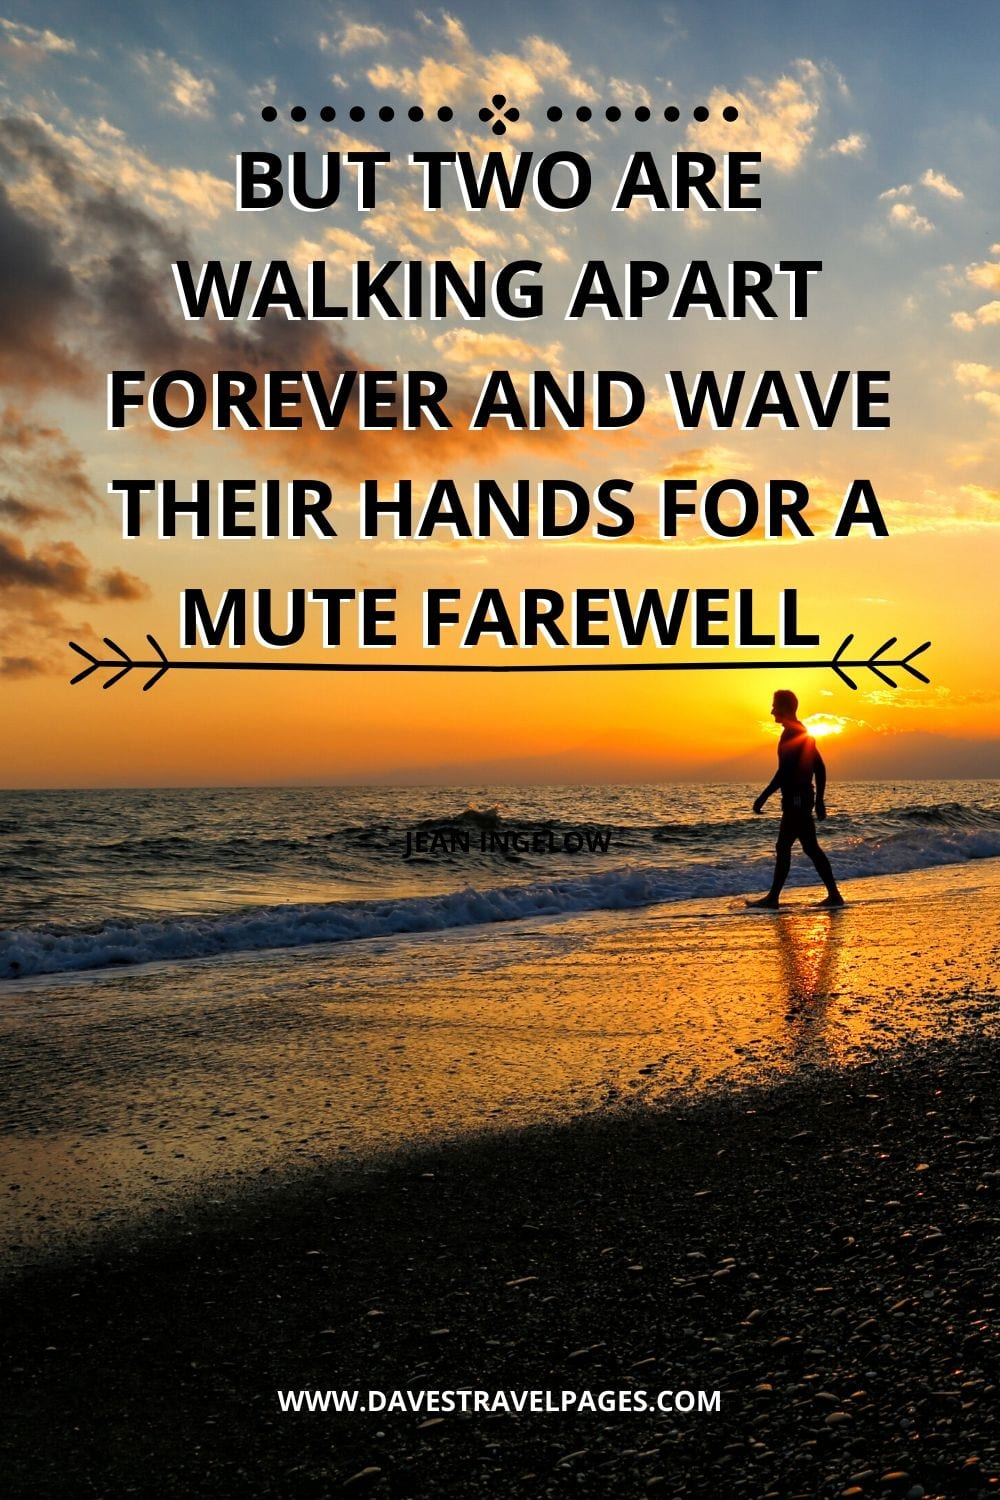 Walking Together Quotes: But two are walking apart forever And wave their hands for a mute farewell - Jean Ingelow